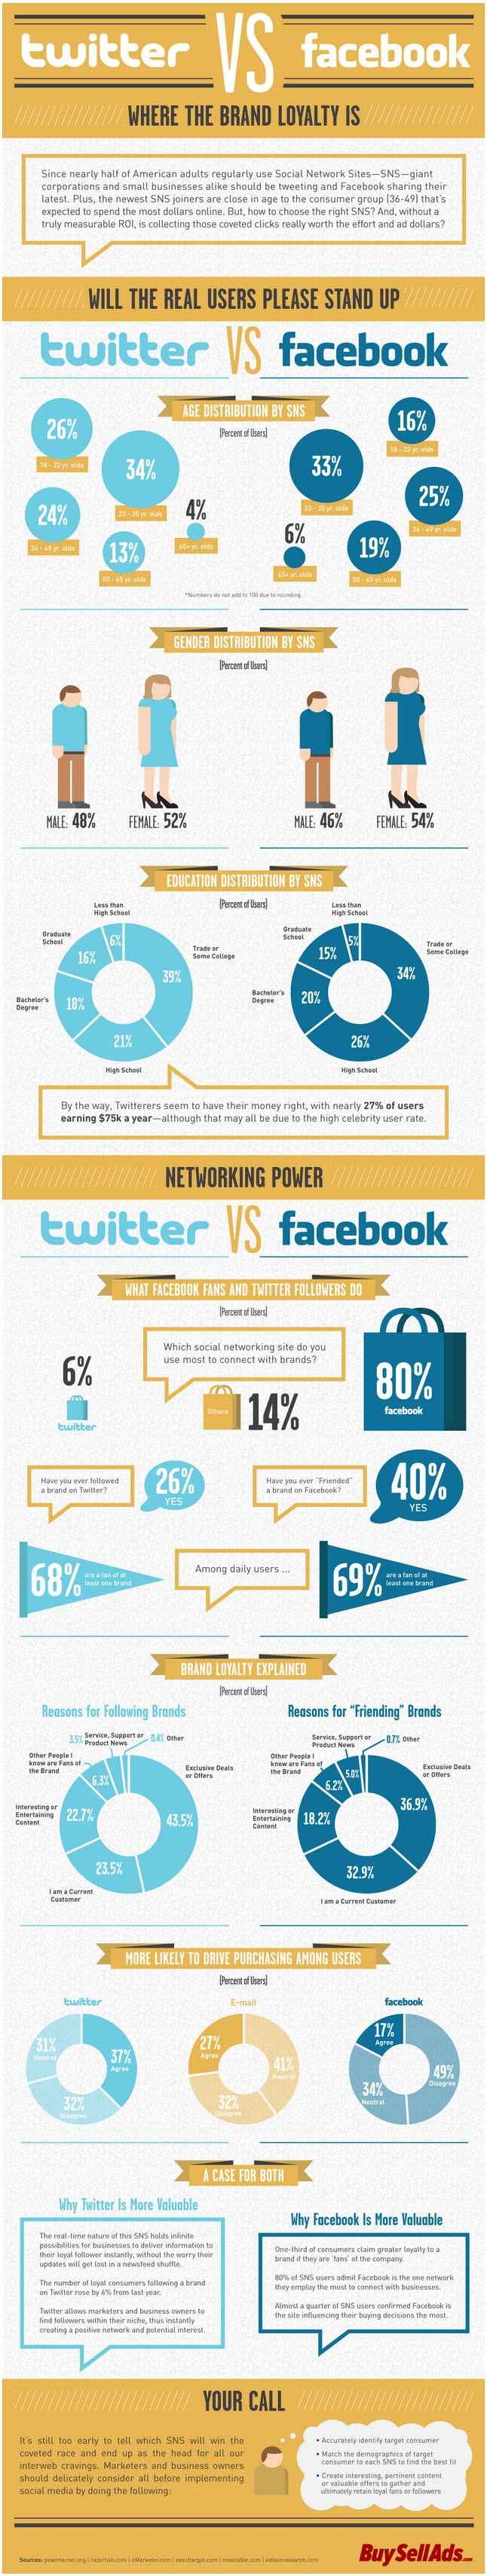 Twitter-vs-Facebook-Marketing